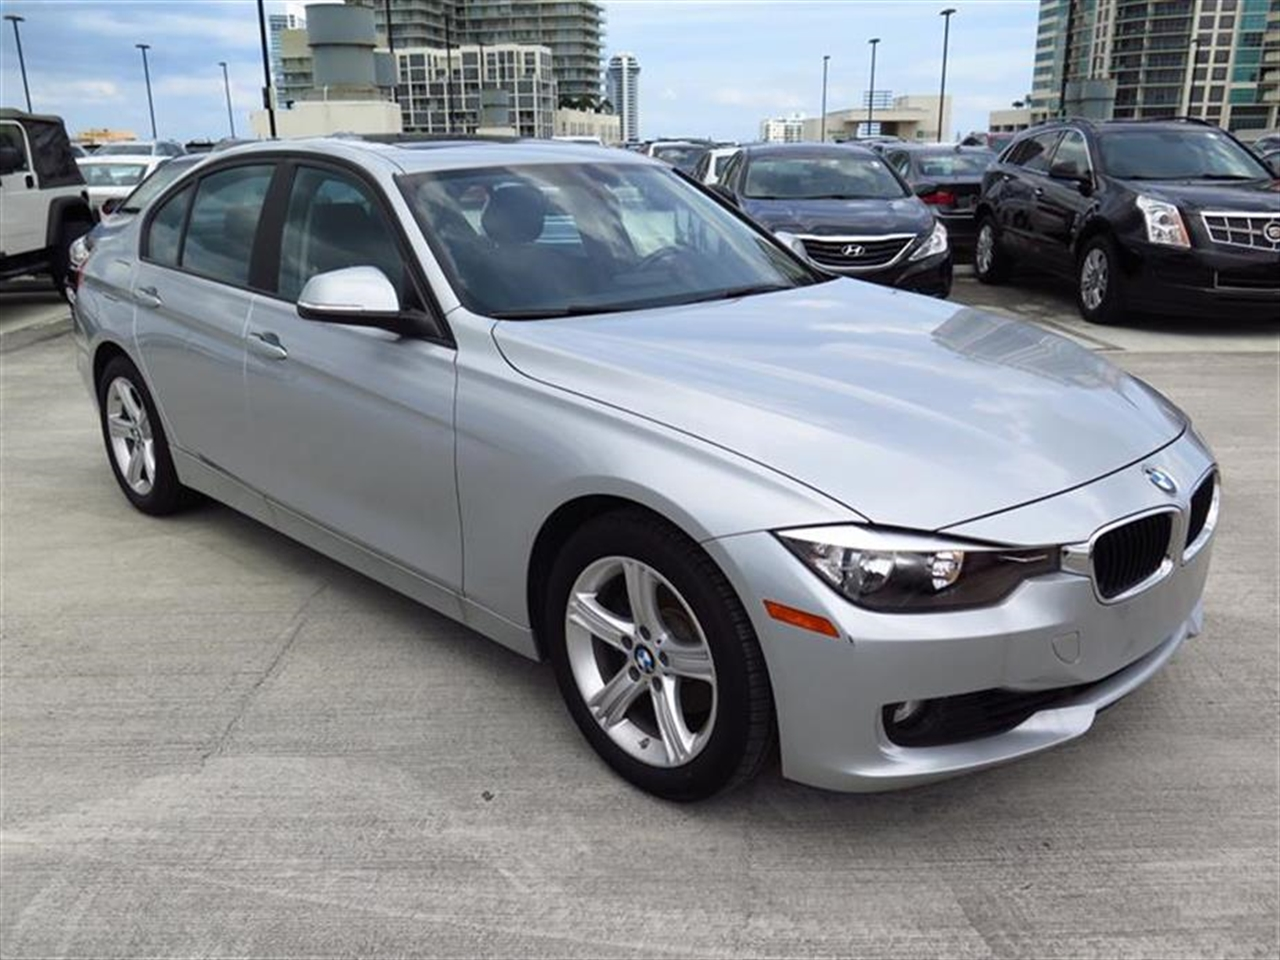 2013 BMW 3 SERIES 4dr Sdn 328i RWD 17793 miles 2-way headrests with active head restraints 3-spo